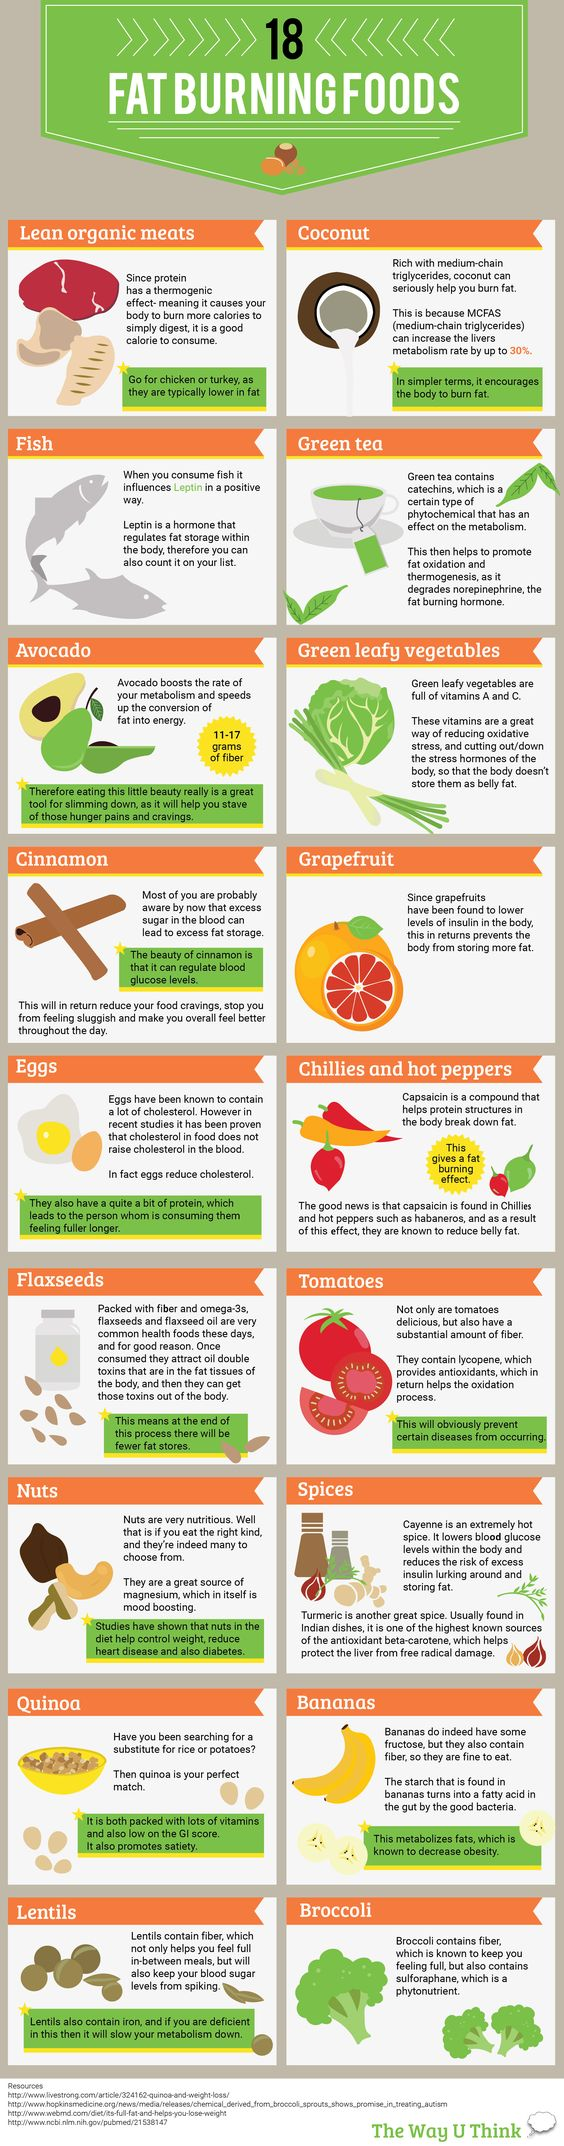 Fat burning foods fat burning and best diet plan on pinterest